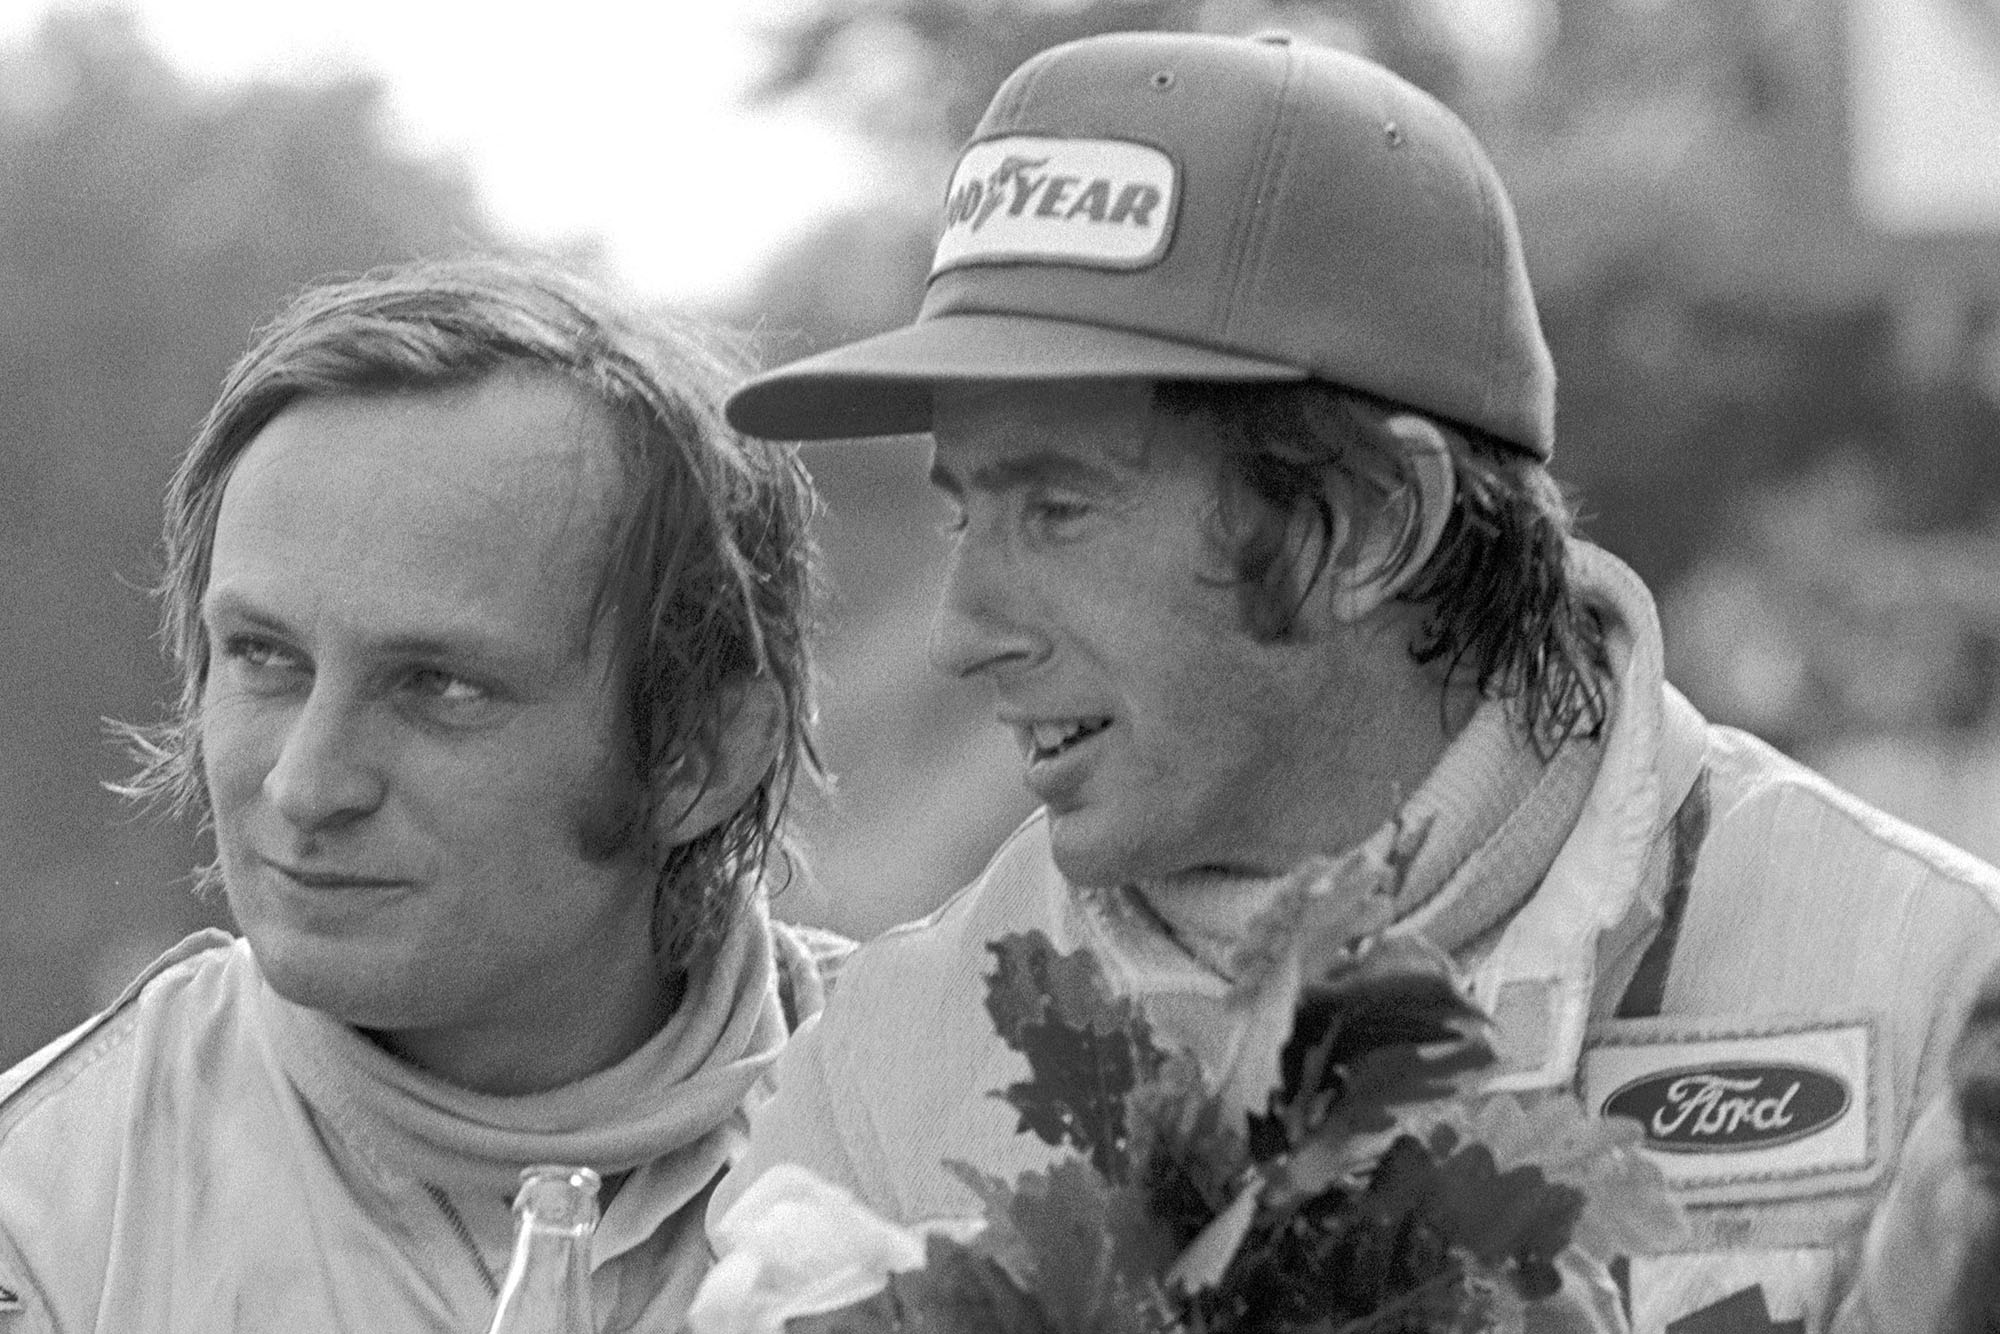 Jackie Stewart and Chris Amon celebrate on the podium at the 1972 French Grand Prix.